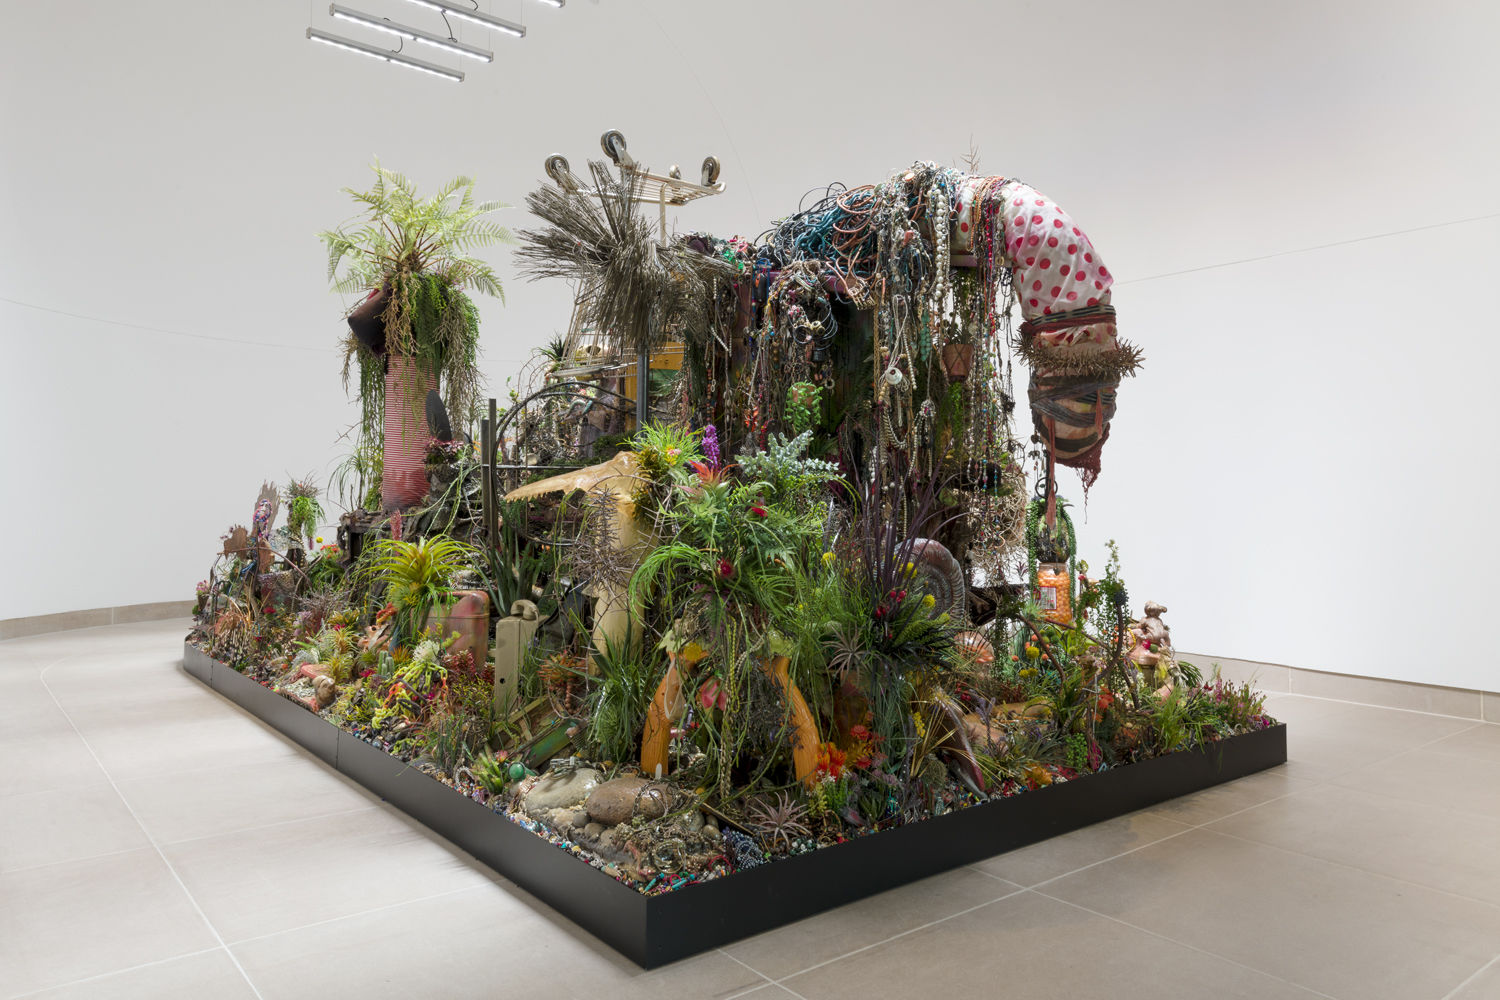 Dense Installations by Max Hooper Schneider Feature Vibrant Landscapes Scattered with Human Objects